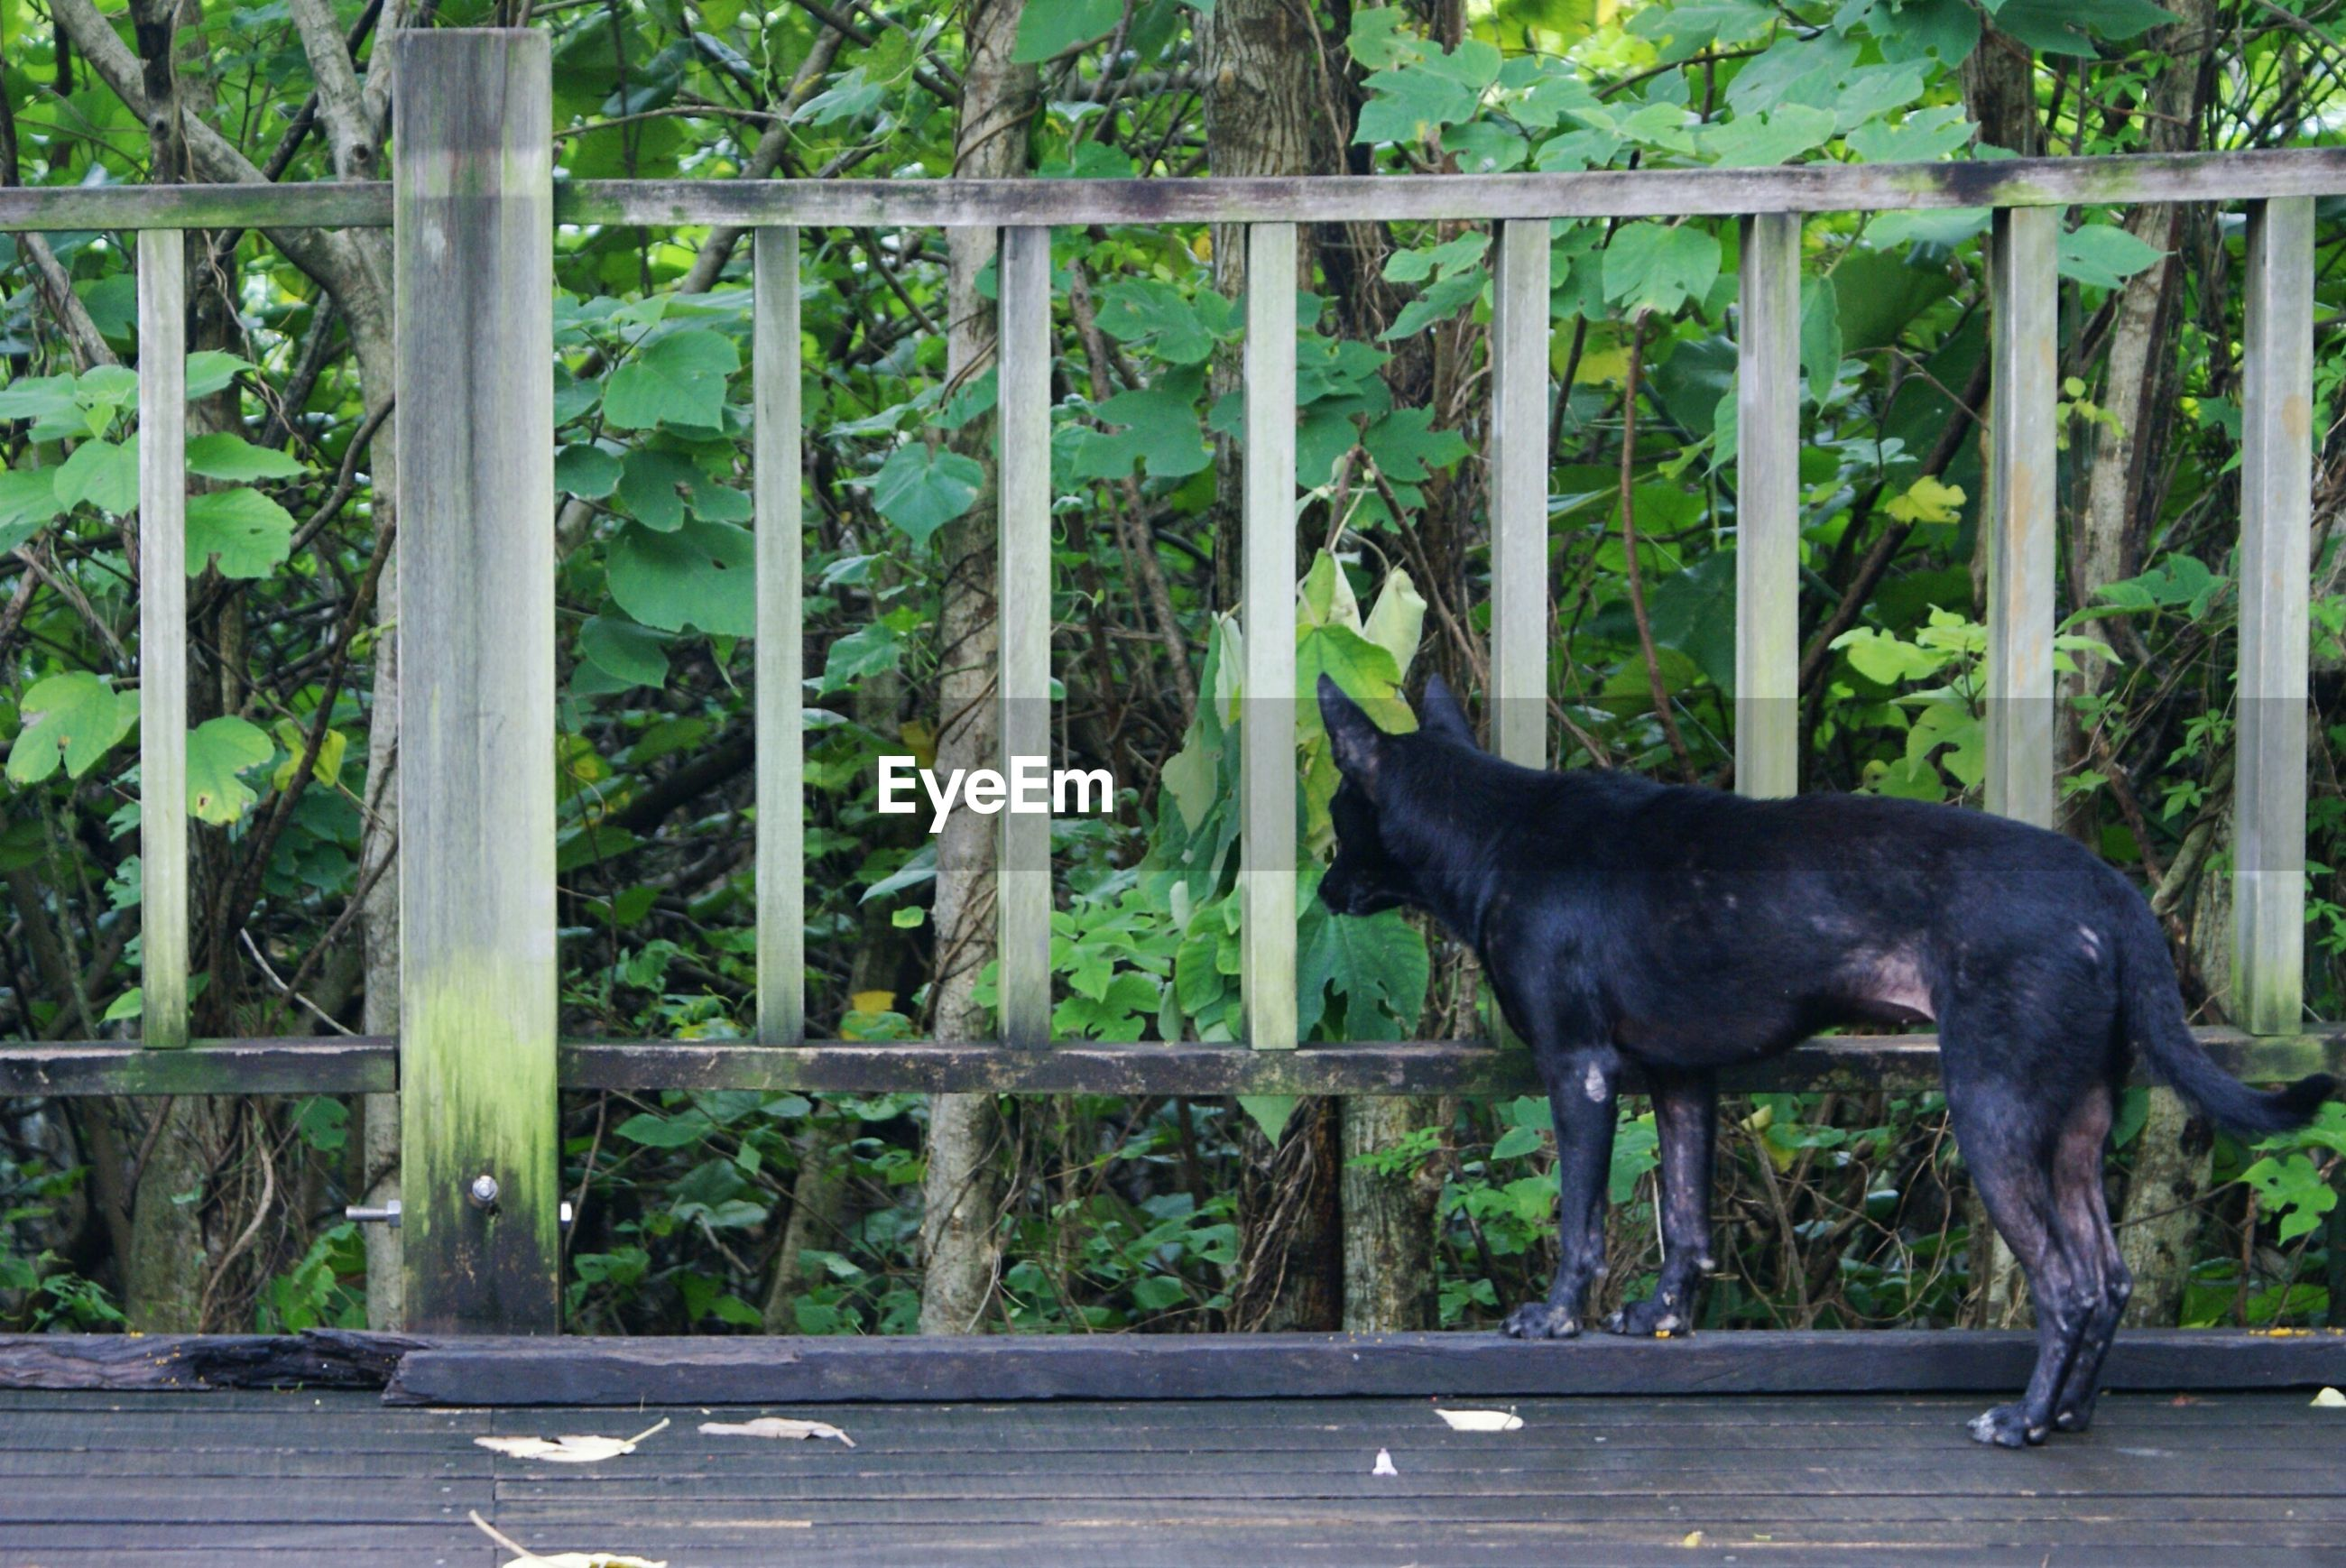 Stray dog looking at plants through wooden fence